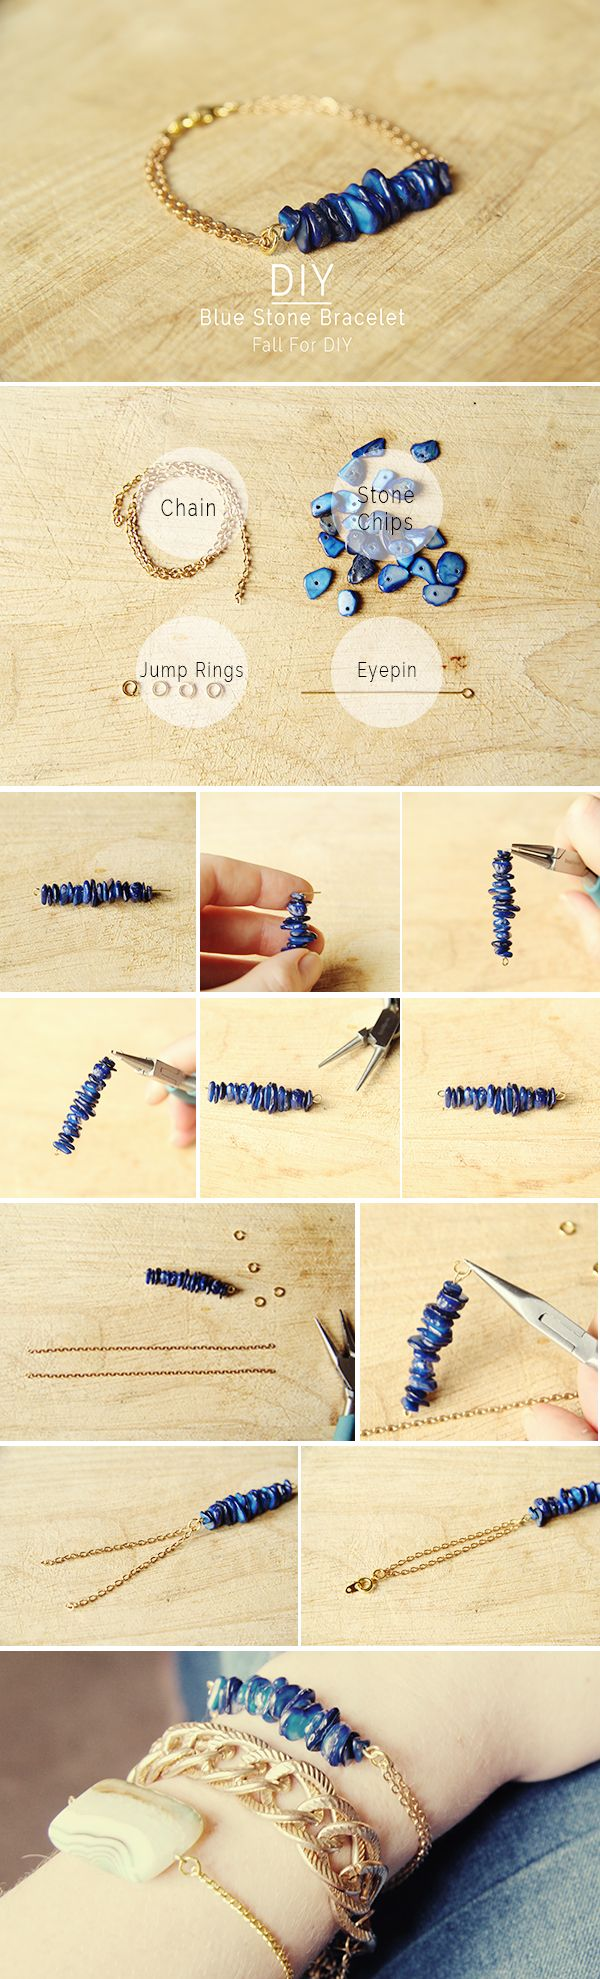 DIY Blue Stone Bracelet - love all 3 of these bracelets! Erin mom audrey